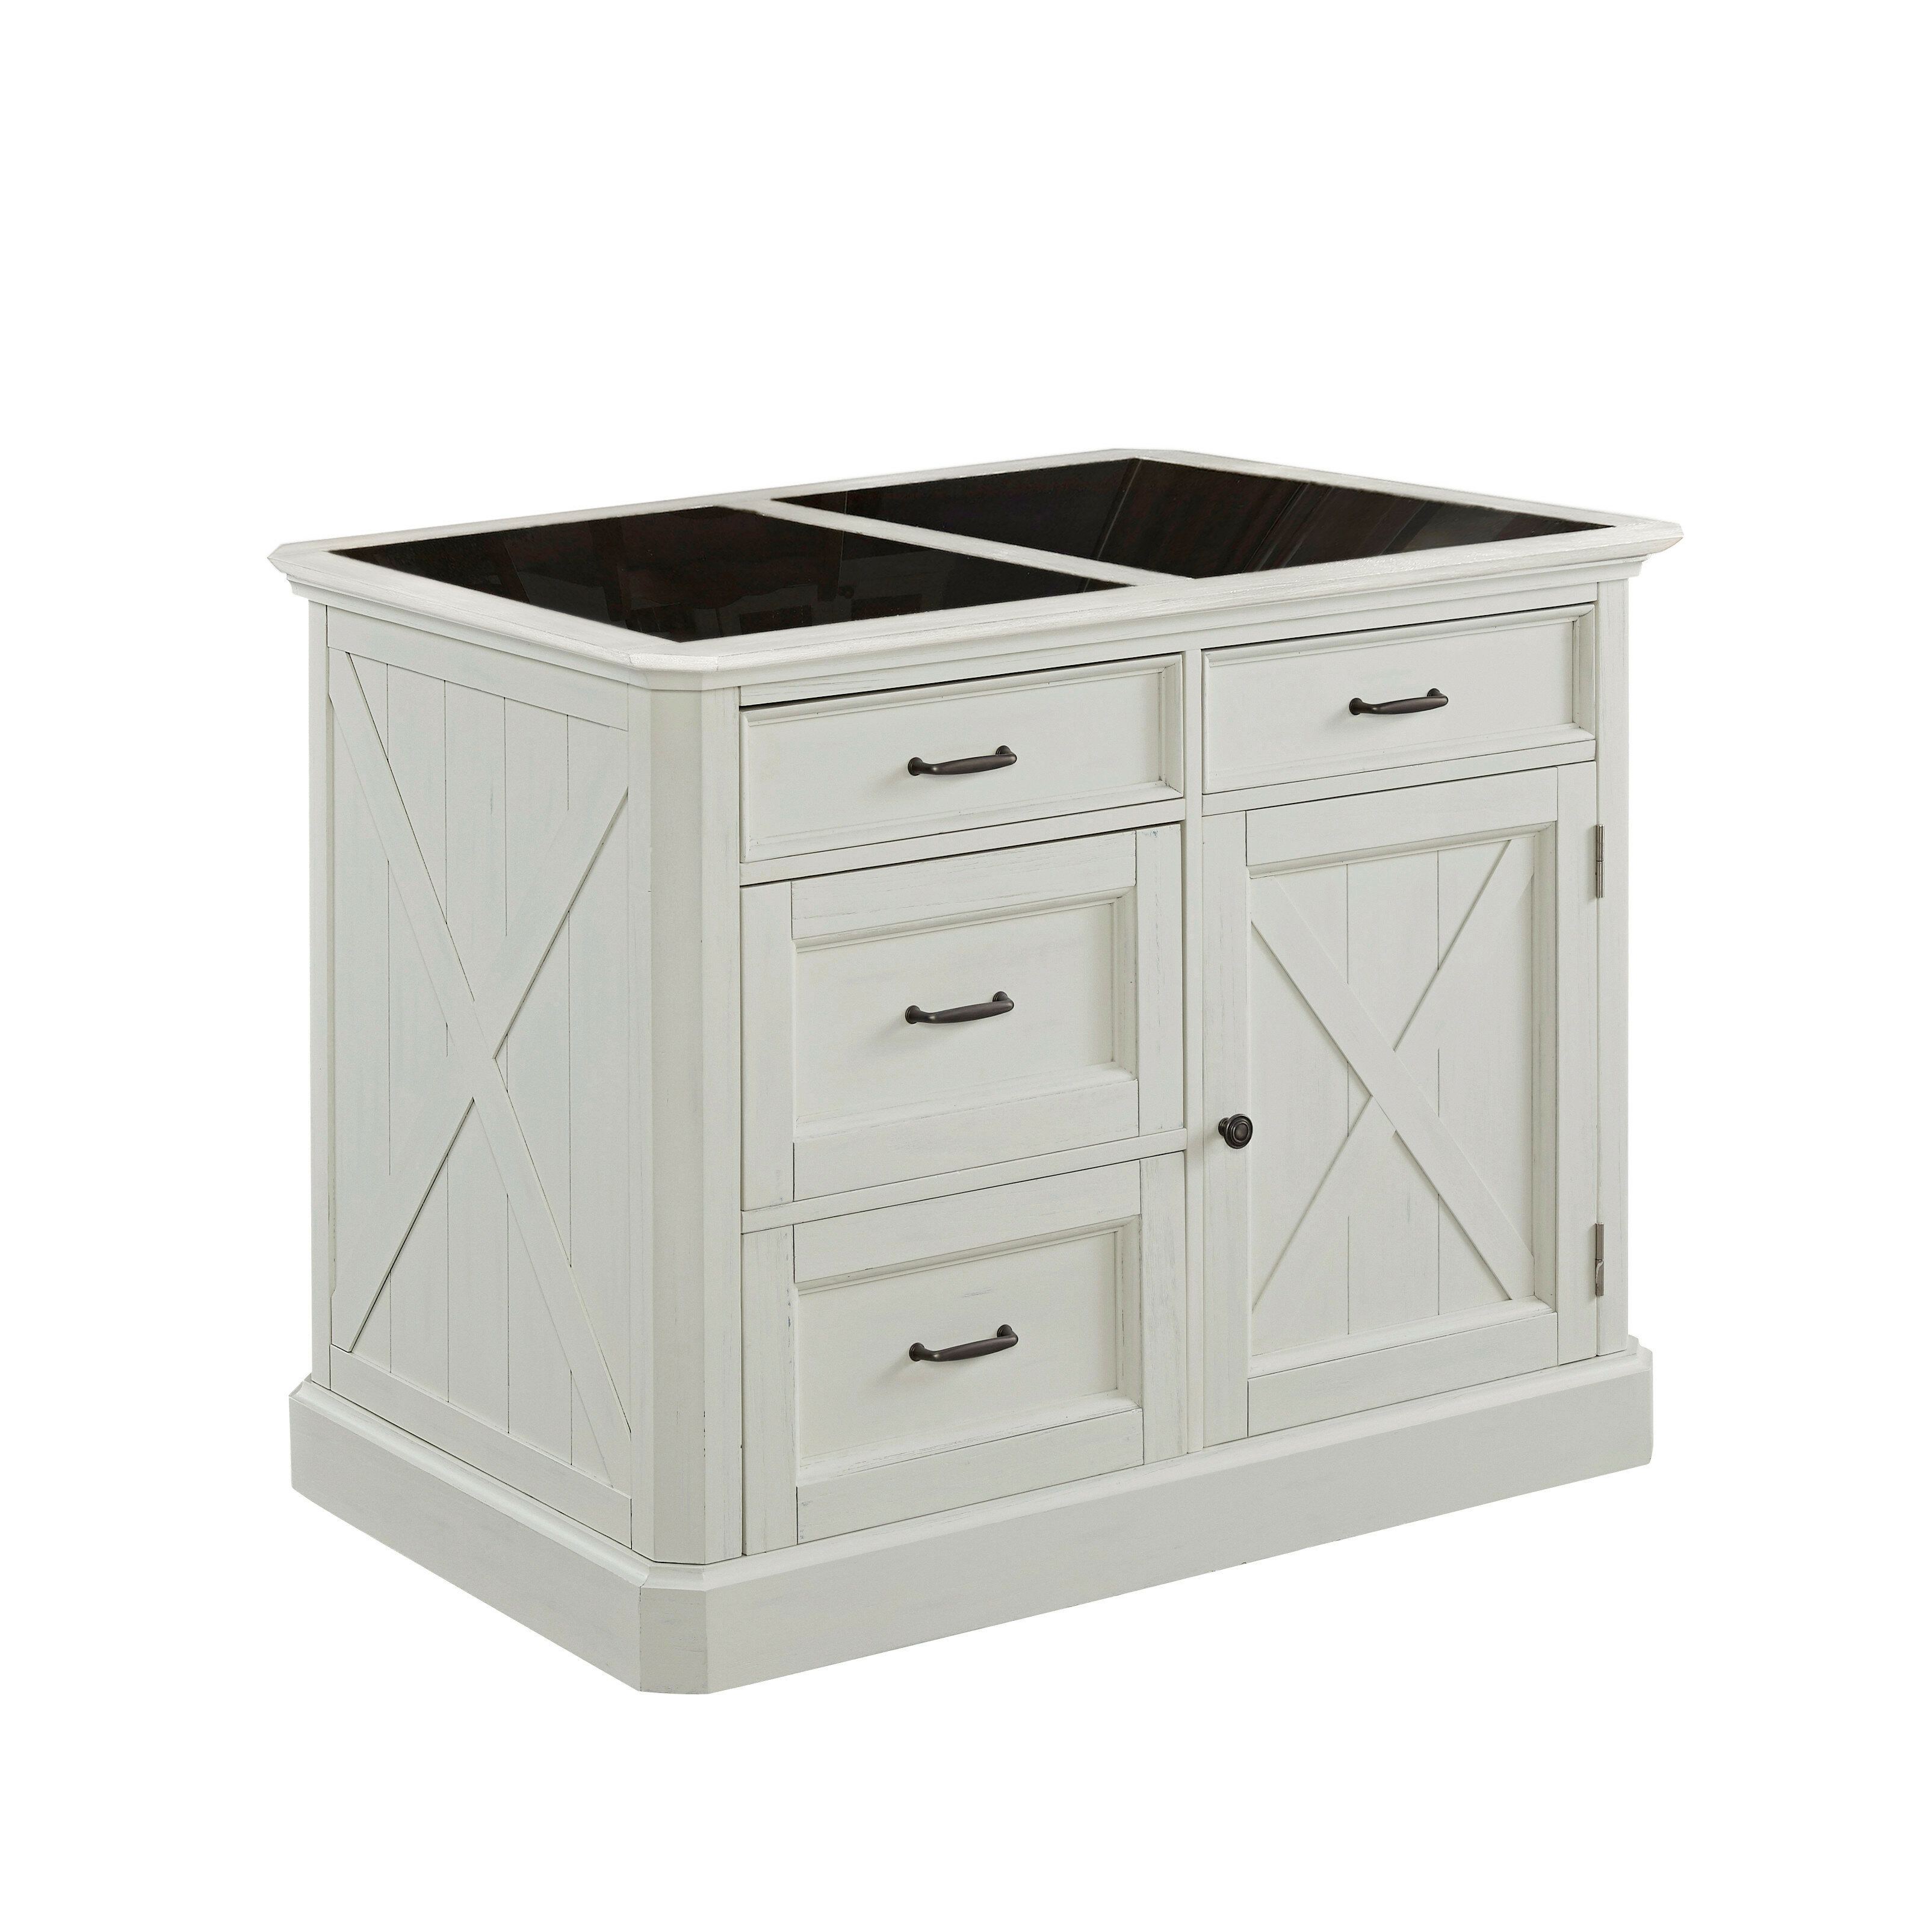 Laurel Foundry Modern Farmhouse Moravia Kitchen Island With Granite Top Reviews